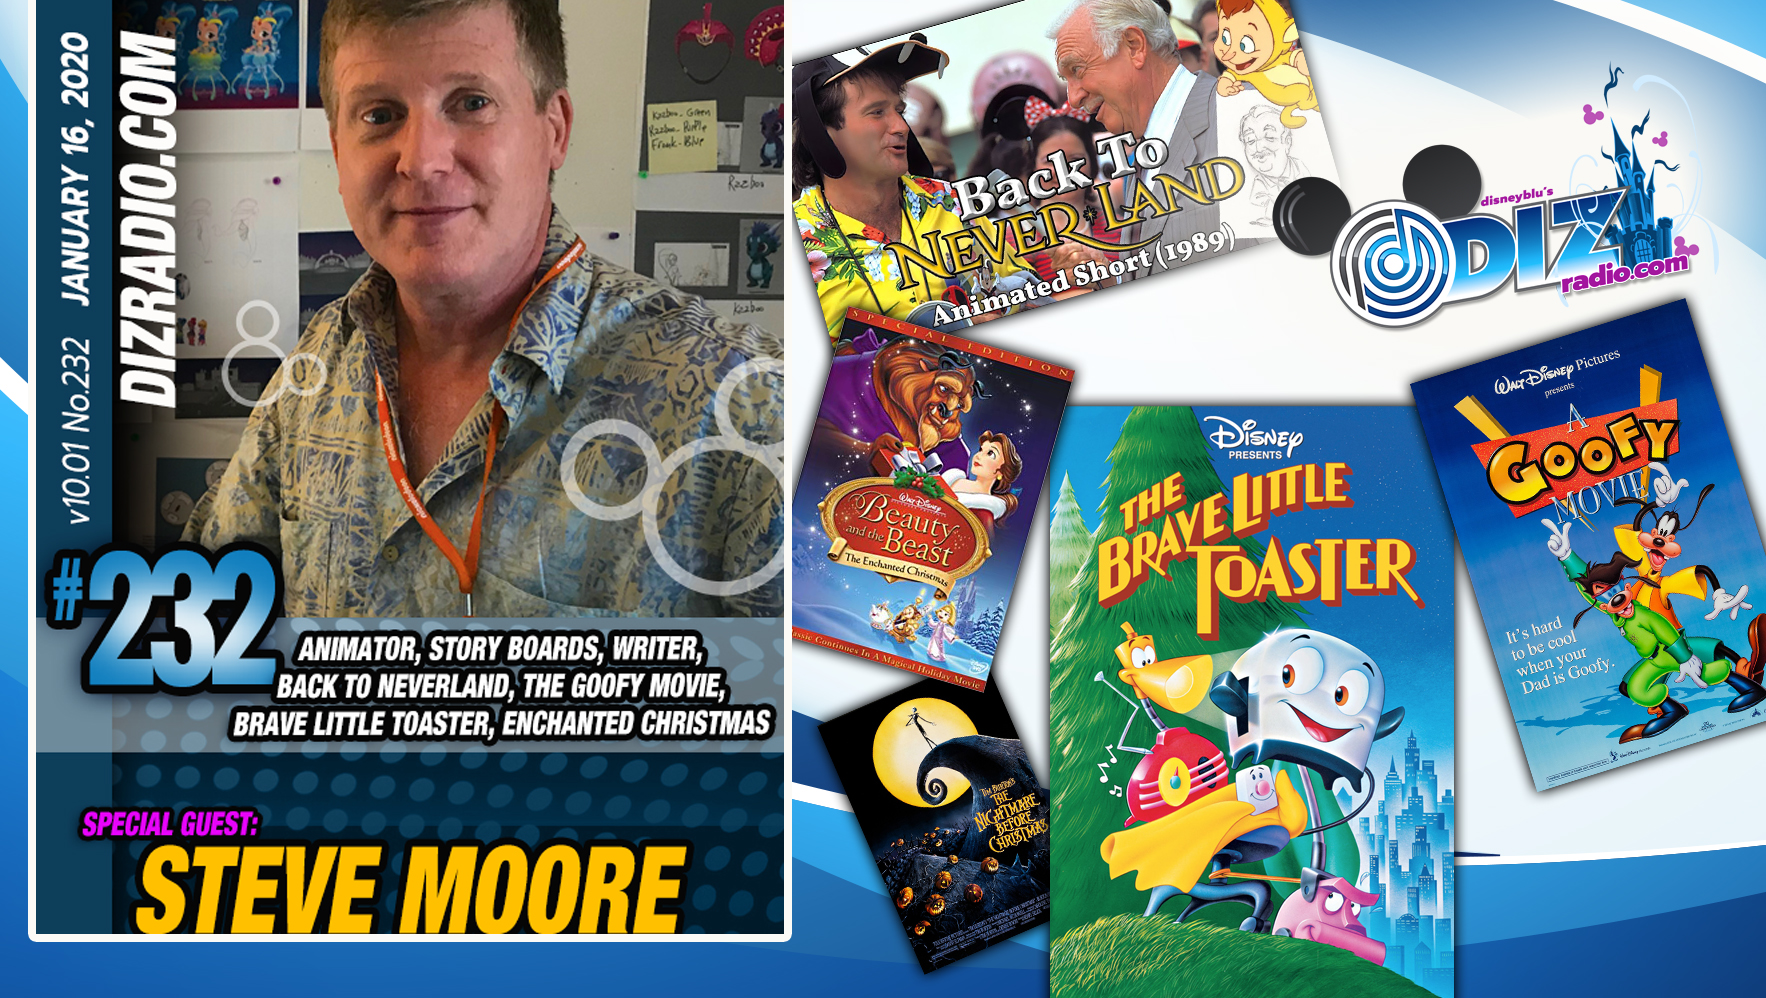 DisneyBlu's DizRadio Disney on Demand Show #232 w/ Guest STEVE MOORE (Disney Animator, Writer, Director, The Goofy Movie, Brave Little Toaster, Back to Neverland, Beauty and the Beast The Enchanted Christmas and more)